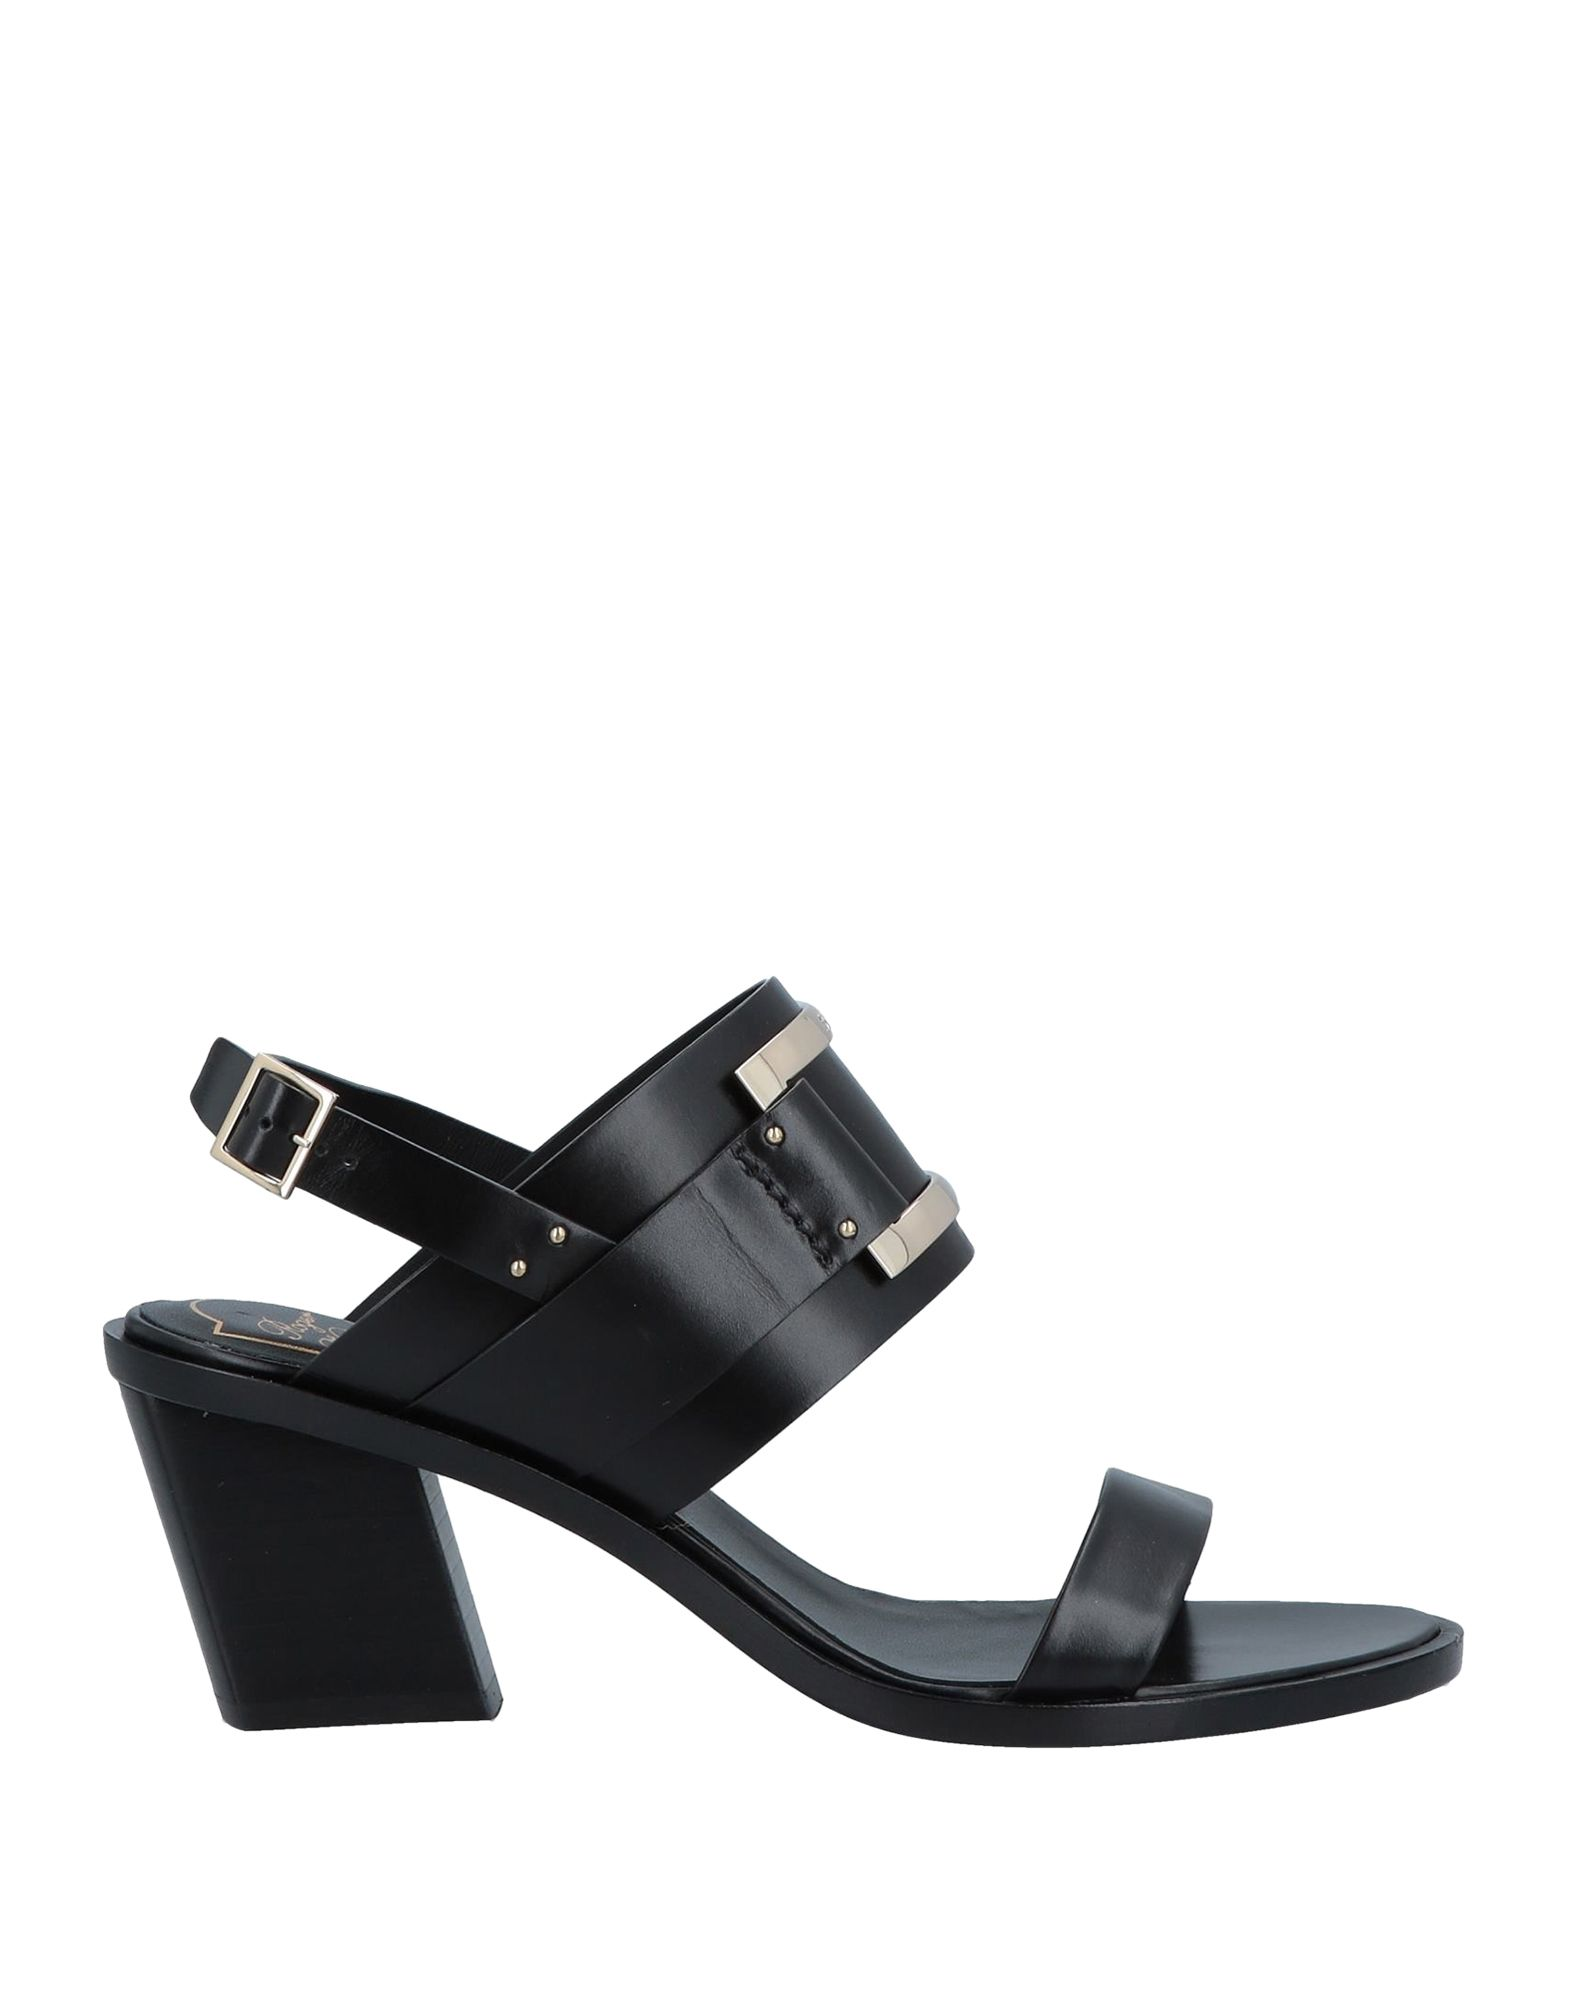 ROGER VIVIER Sandals. logo, metal applications, solid color, buckle, round toeline, leather lining, leather sole, geometric heel, contains non-textile parts of animal origin. Soft Leather